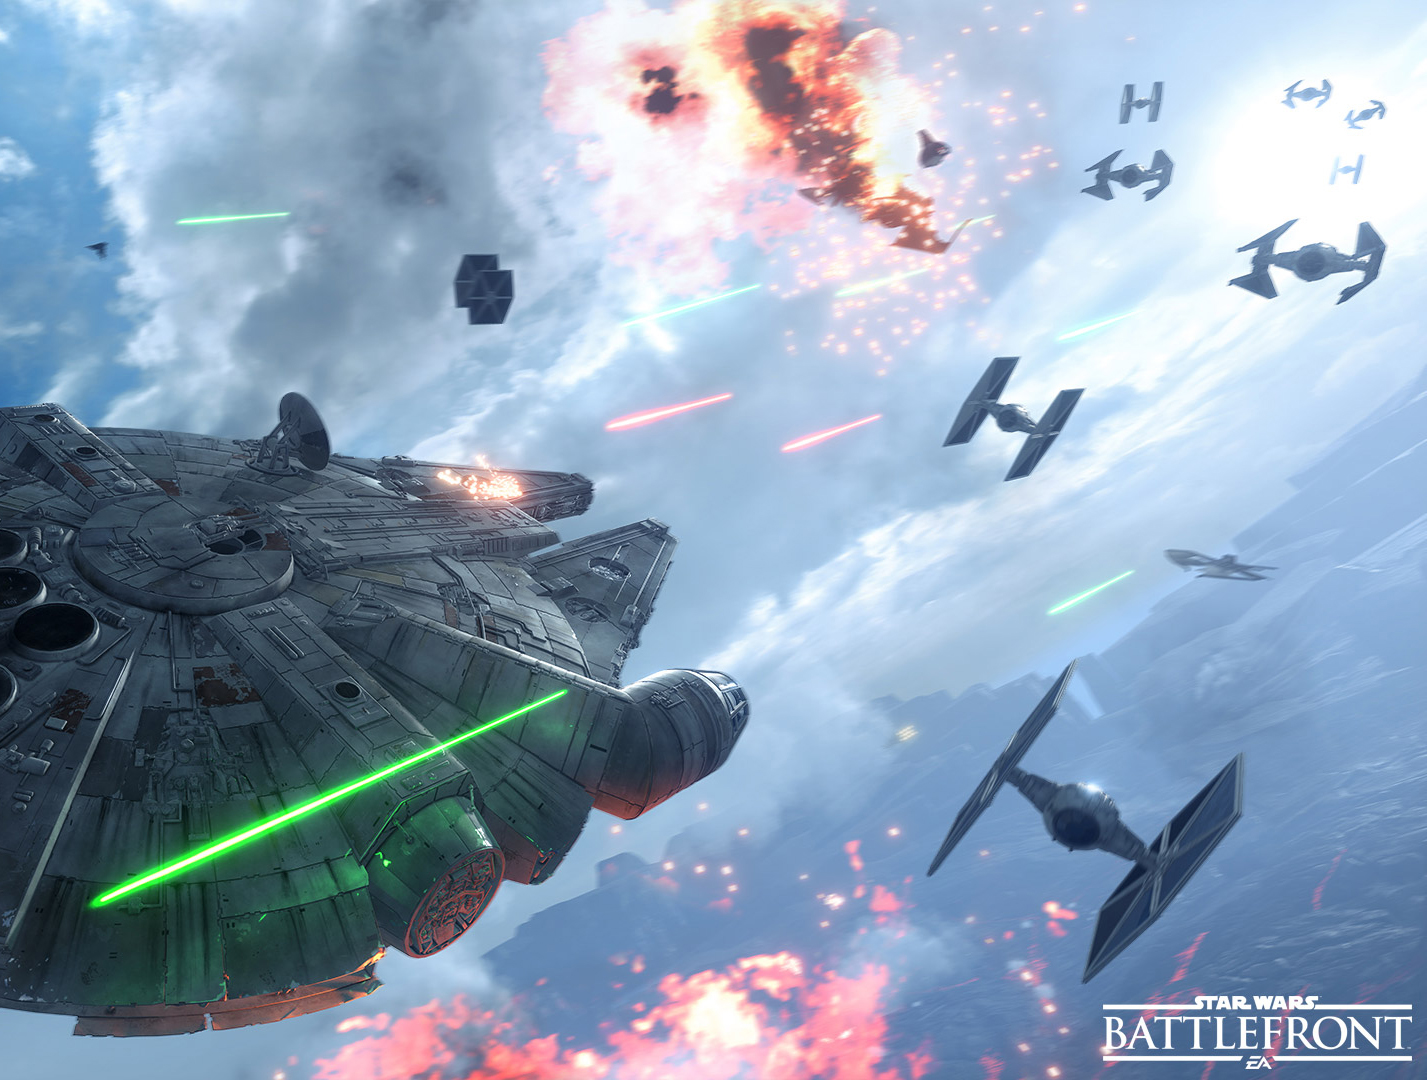 Star Wars: Battlefront Fighter Squadron Gameplay